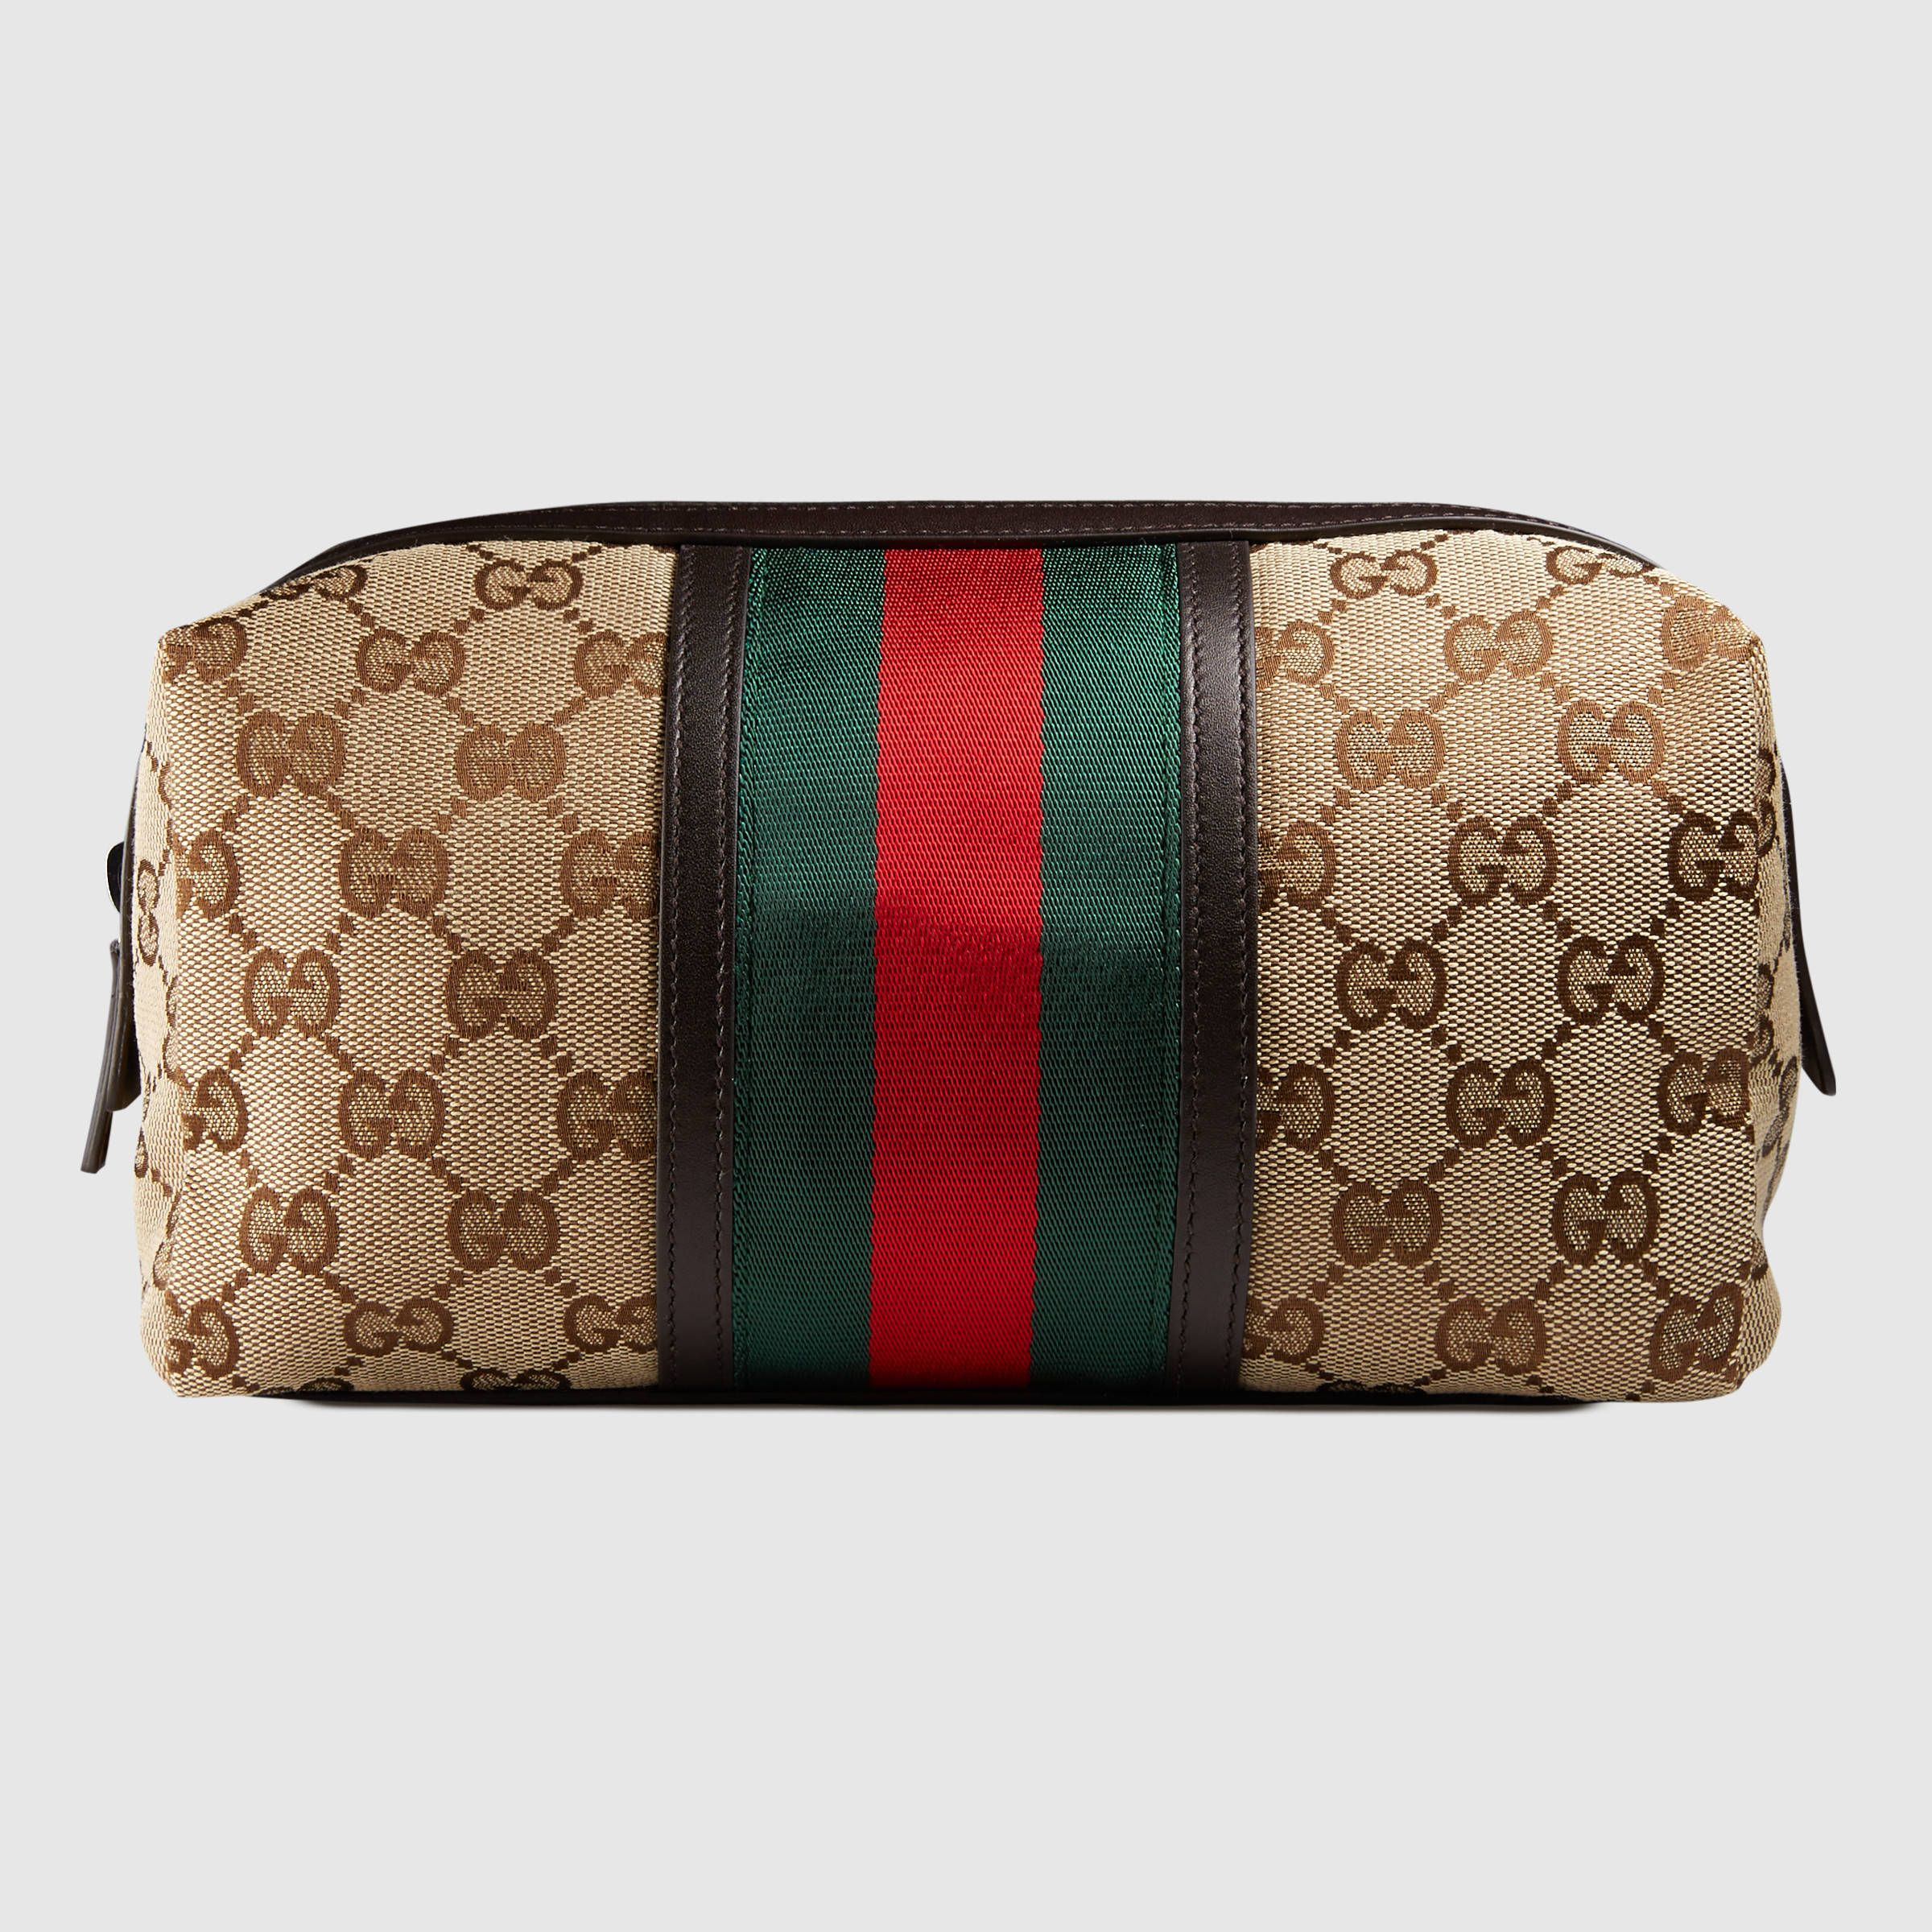 Gucci Original GG large cosmetic case (With images